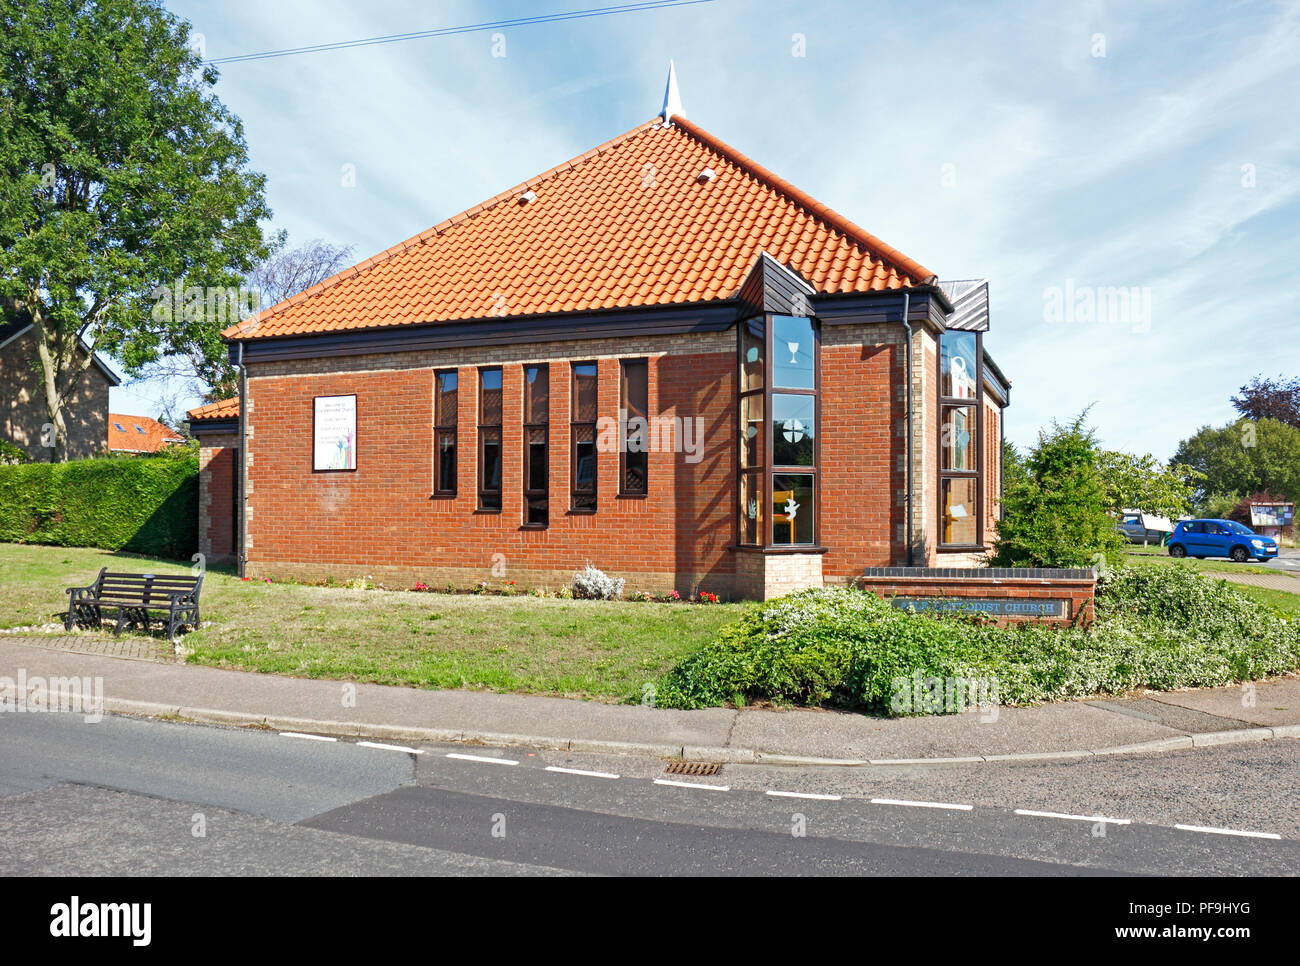 A view of the Methodist Church in East Norfolk at Acle, Norfolk, England, United Kingdom, Europe. - Stock Image